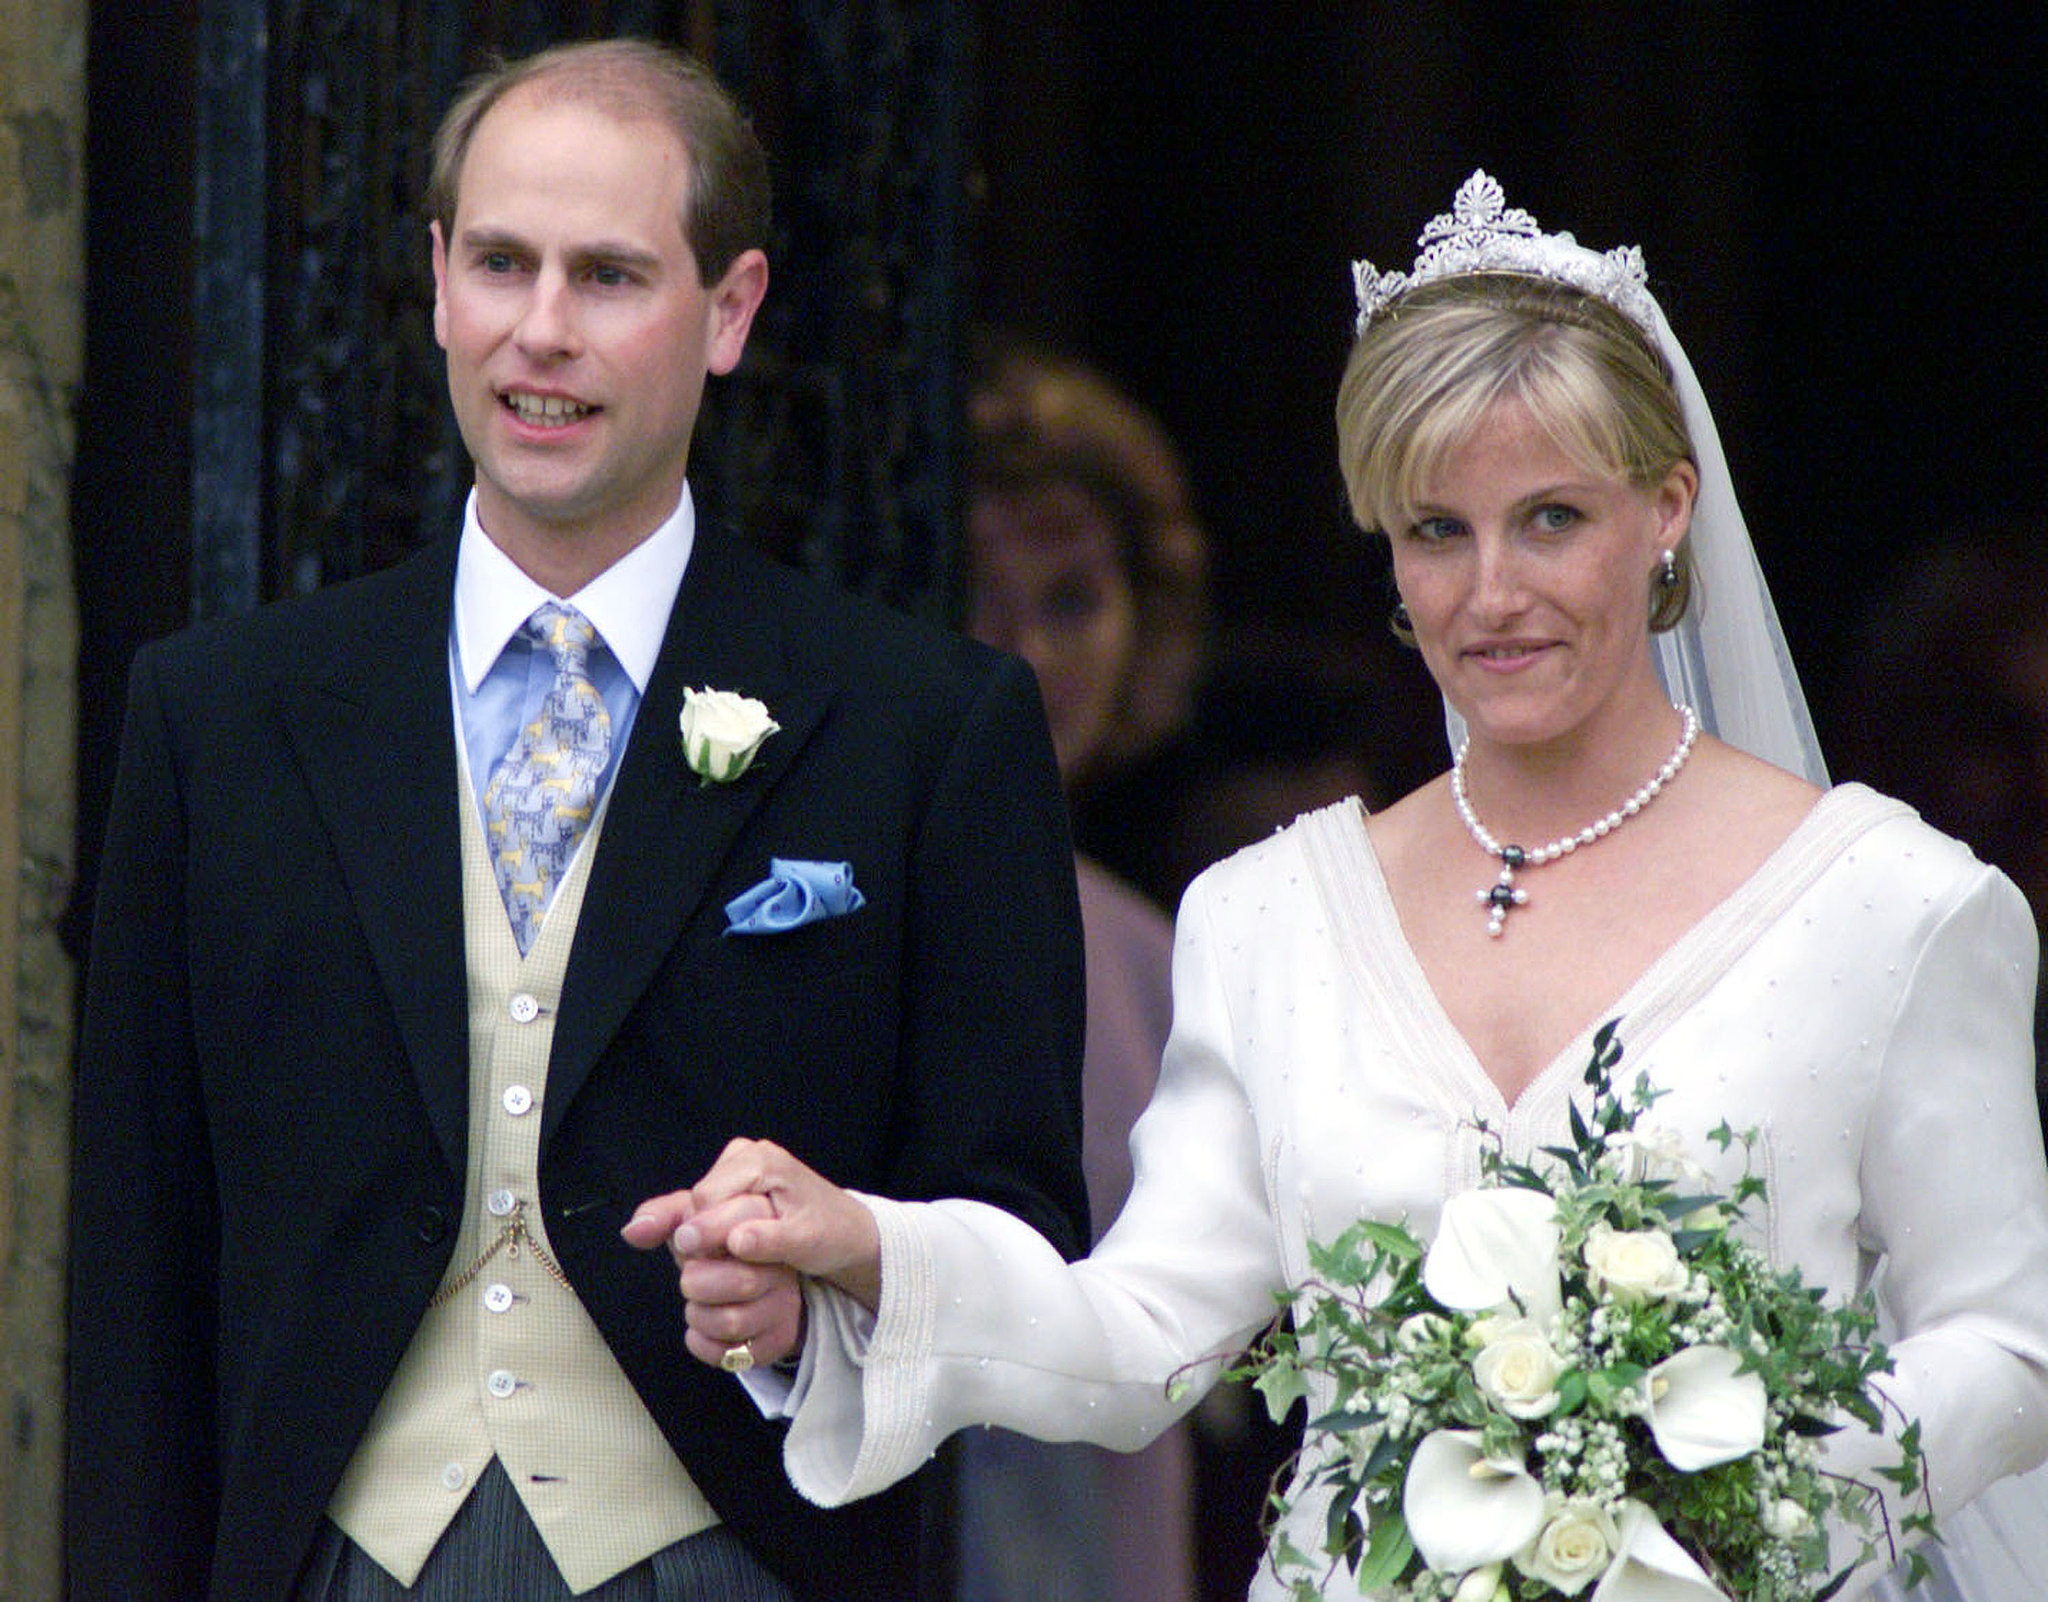 Queen Elizabeth's son Prince Edward married wife Sophie in June 1999 in Windsor, England.